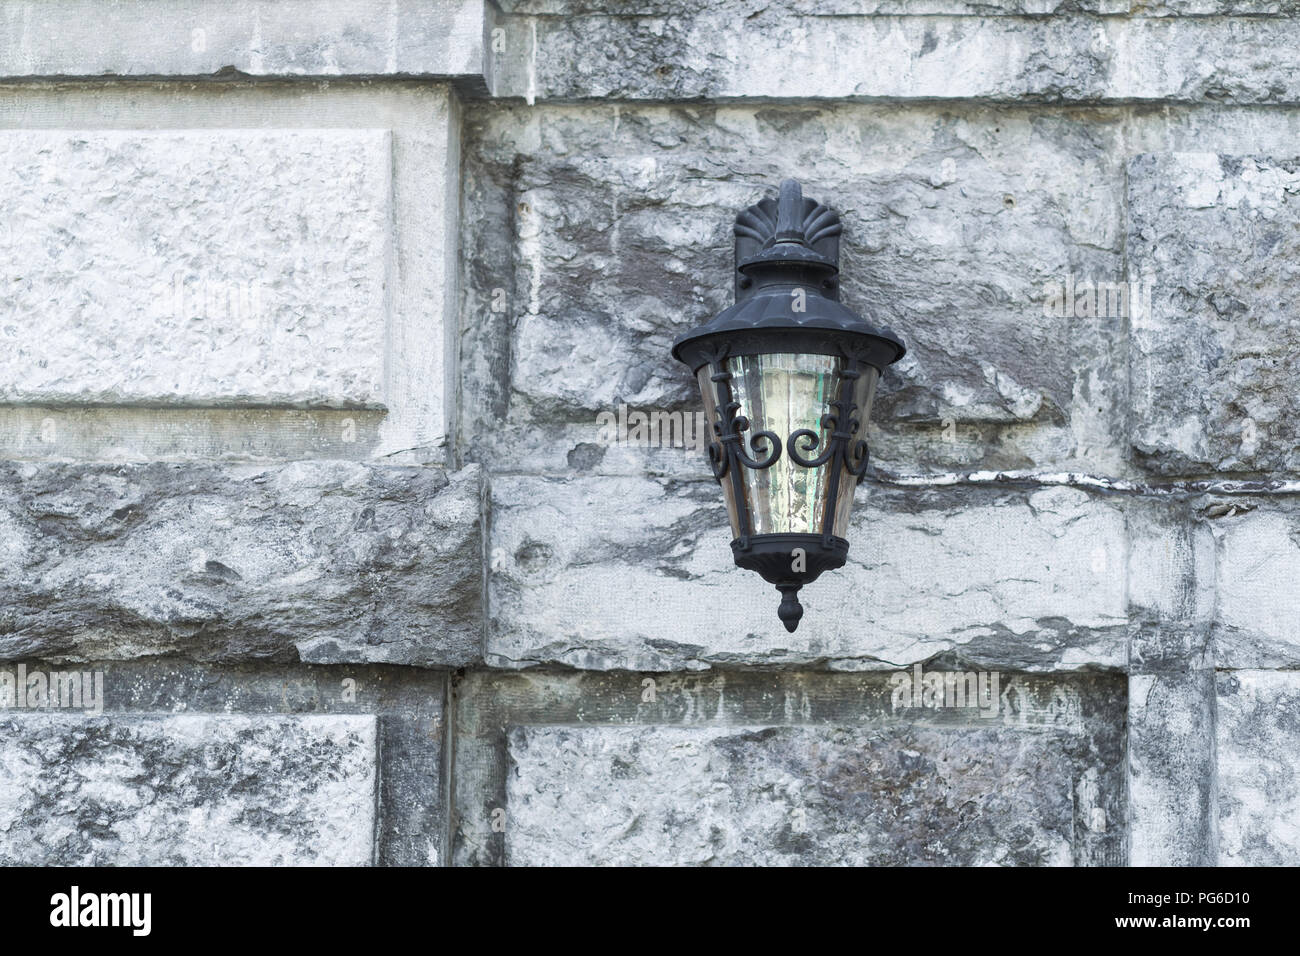 Old black iron lamp on stone wall of middle ages castle - Stock Image